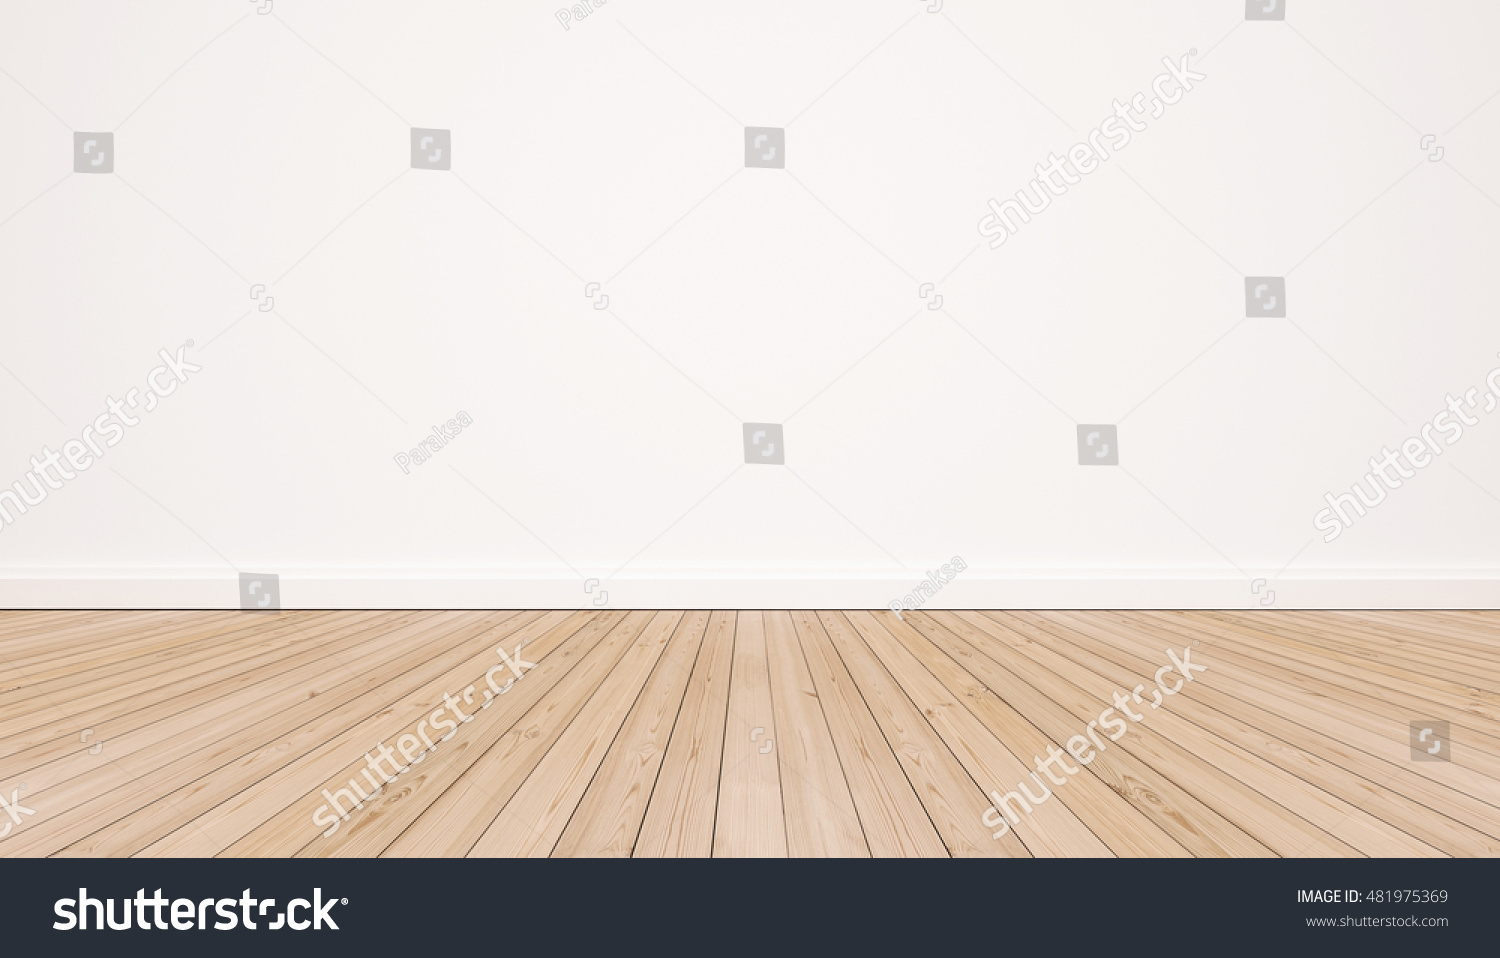 Oak wood floor with white wall #481975369